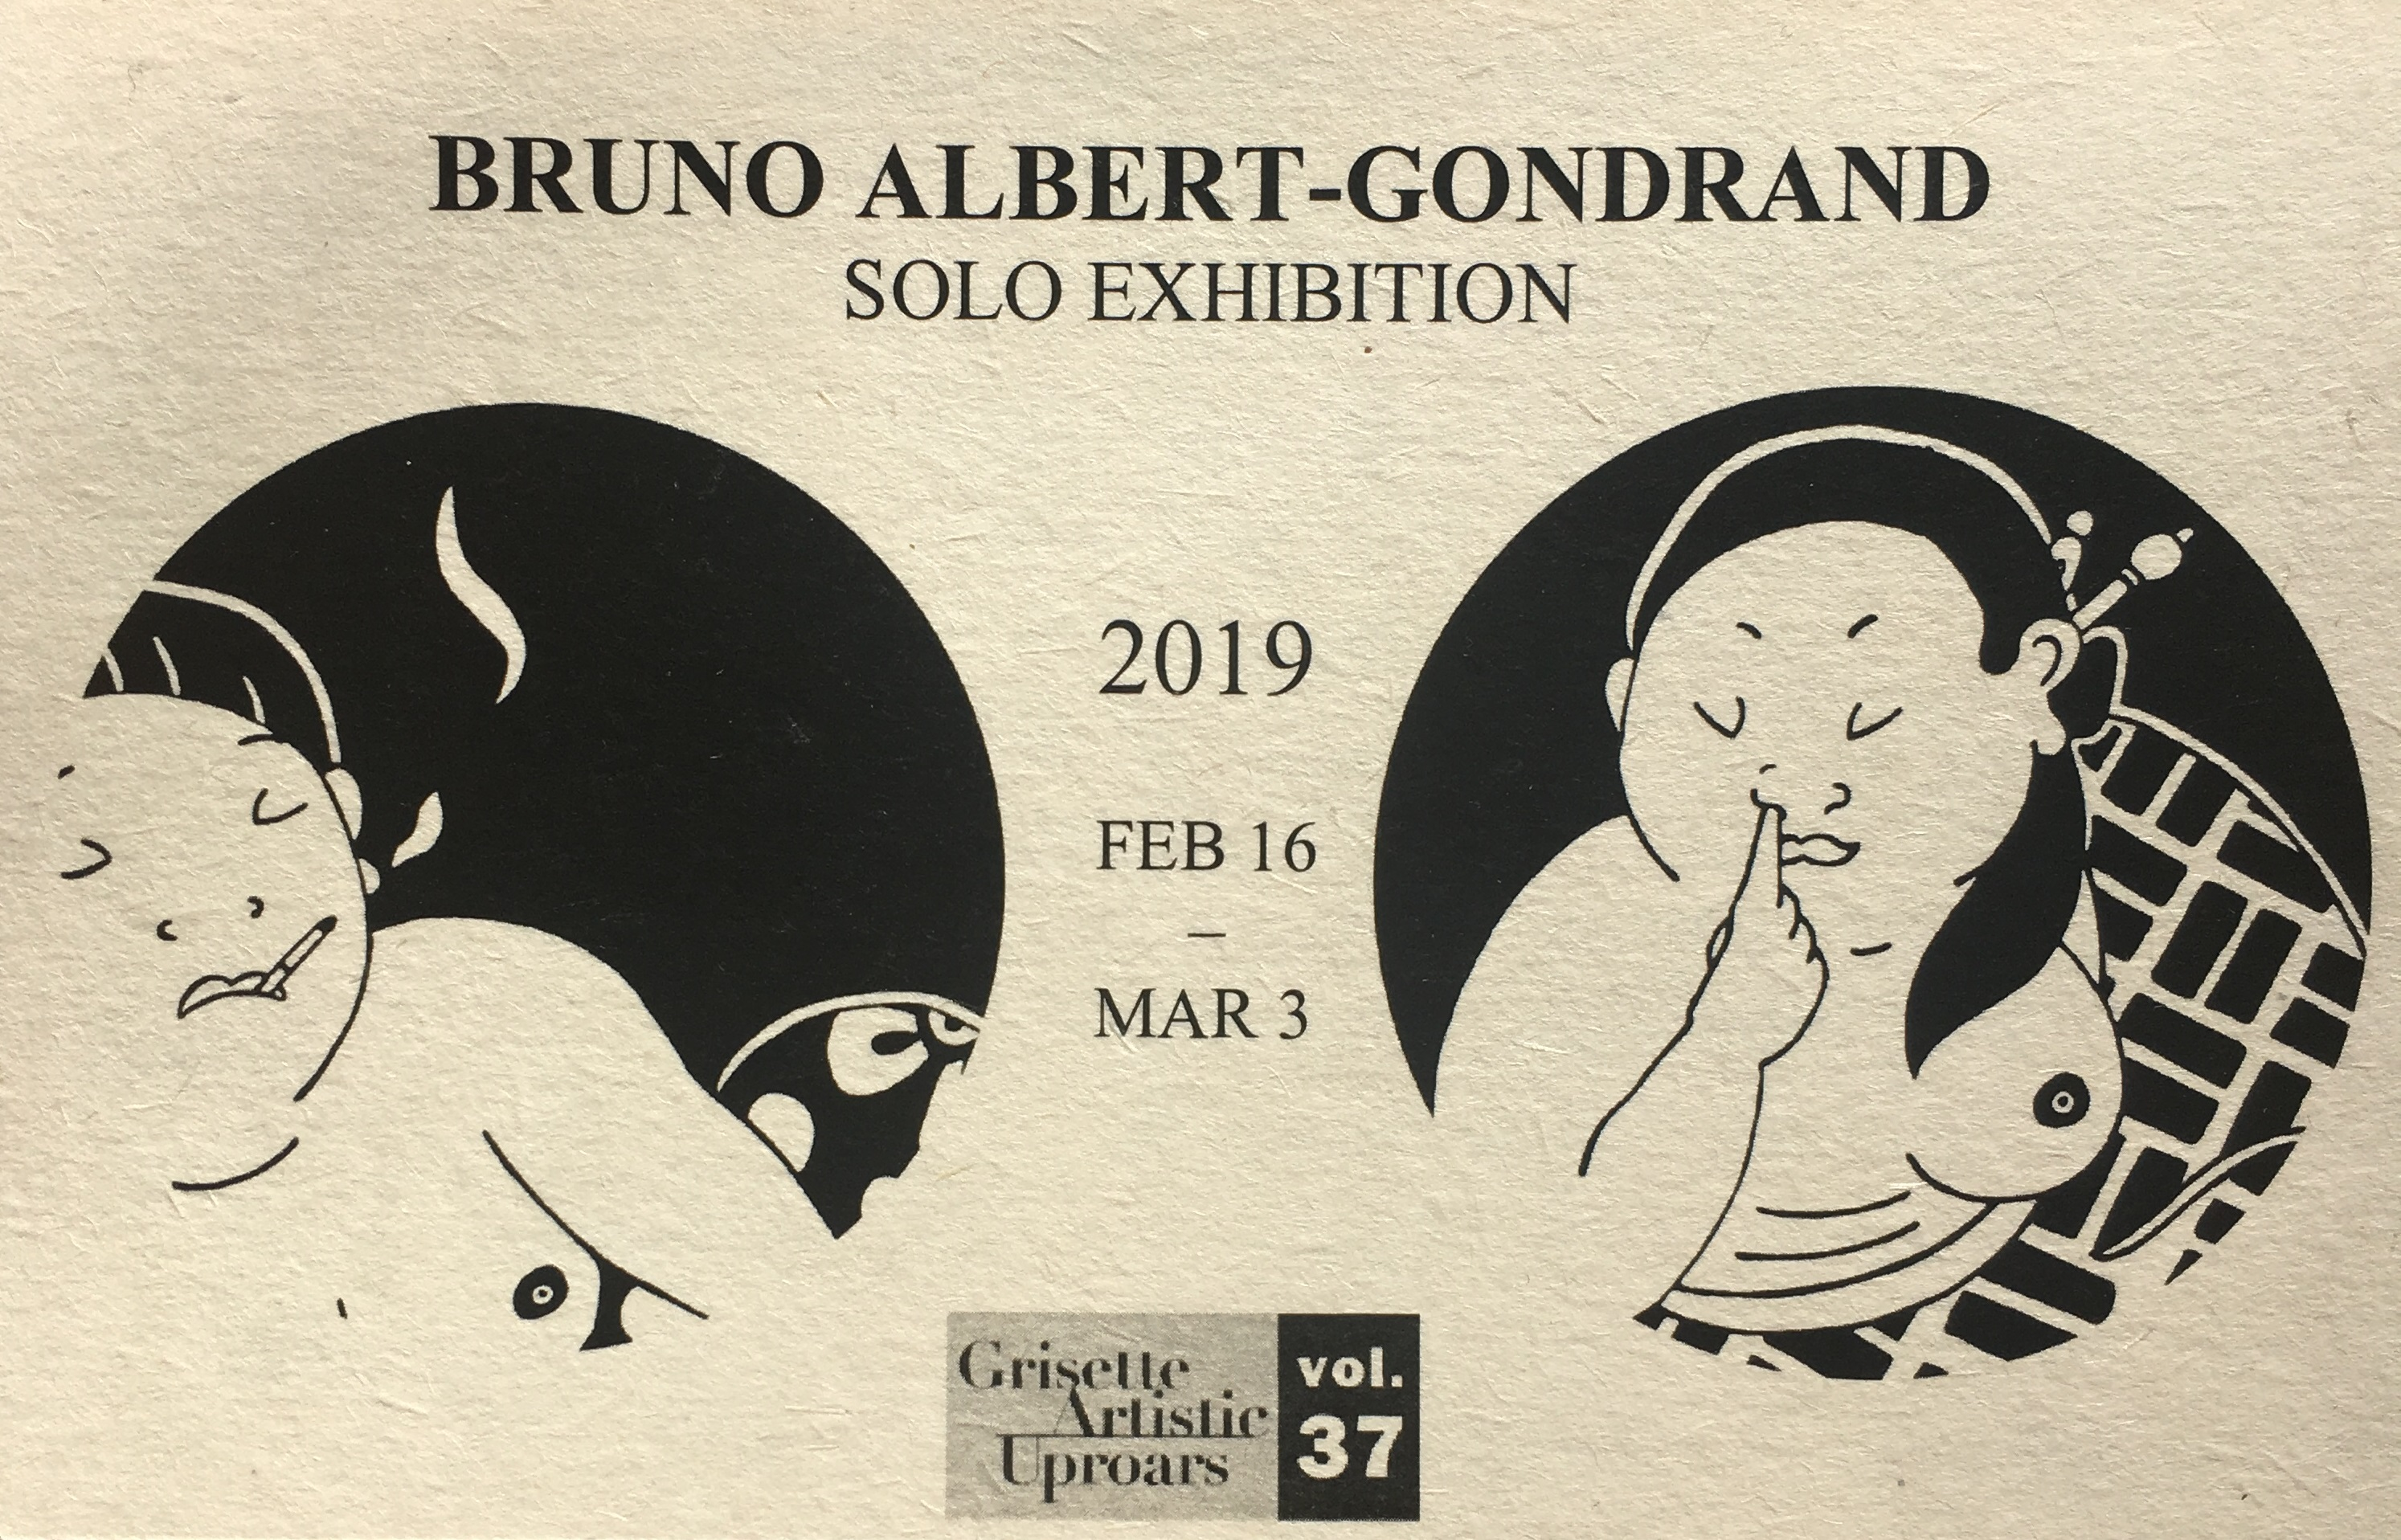 Bruno Albert-Gondrand Solo Exhibition